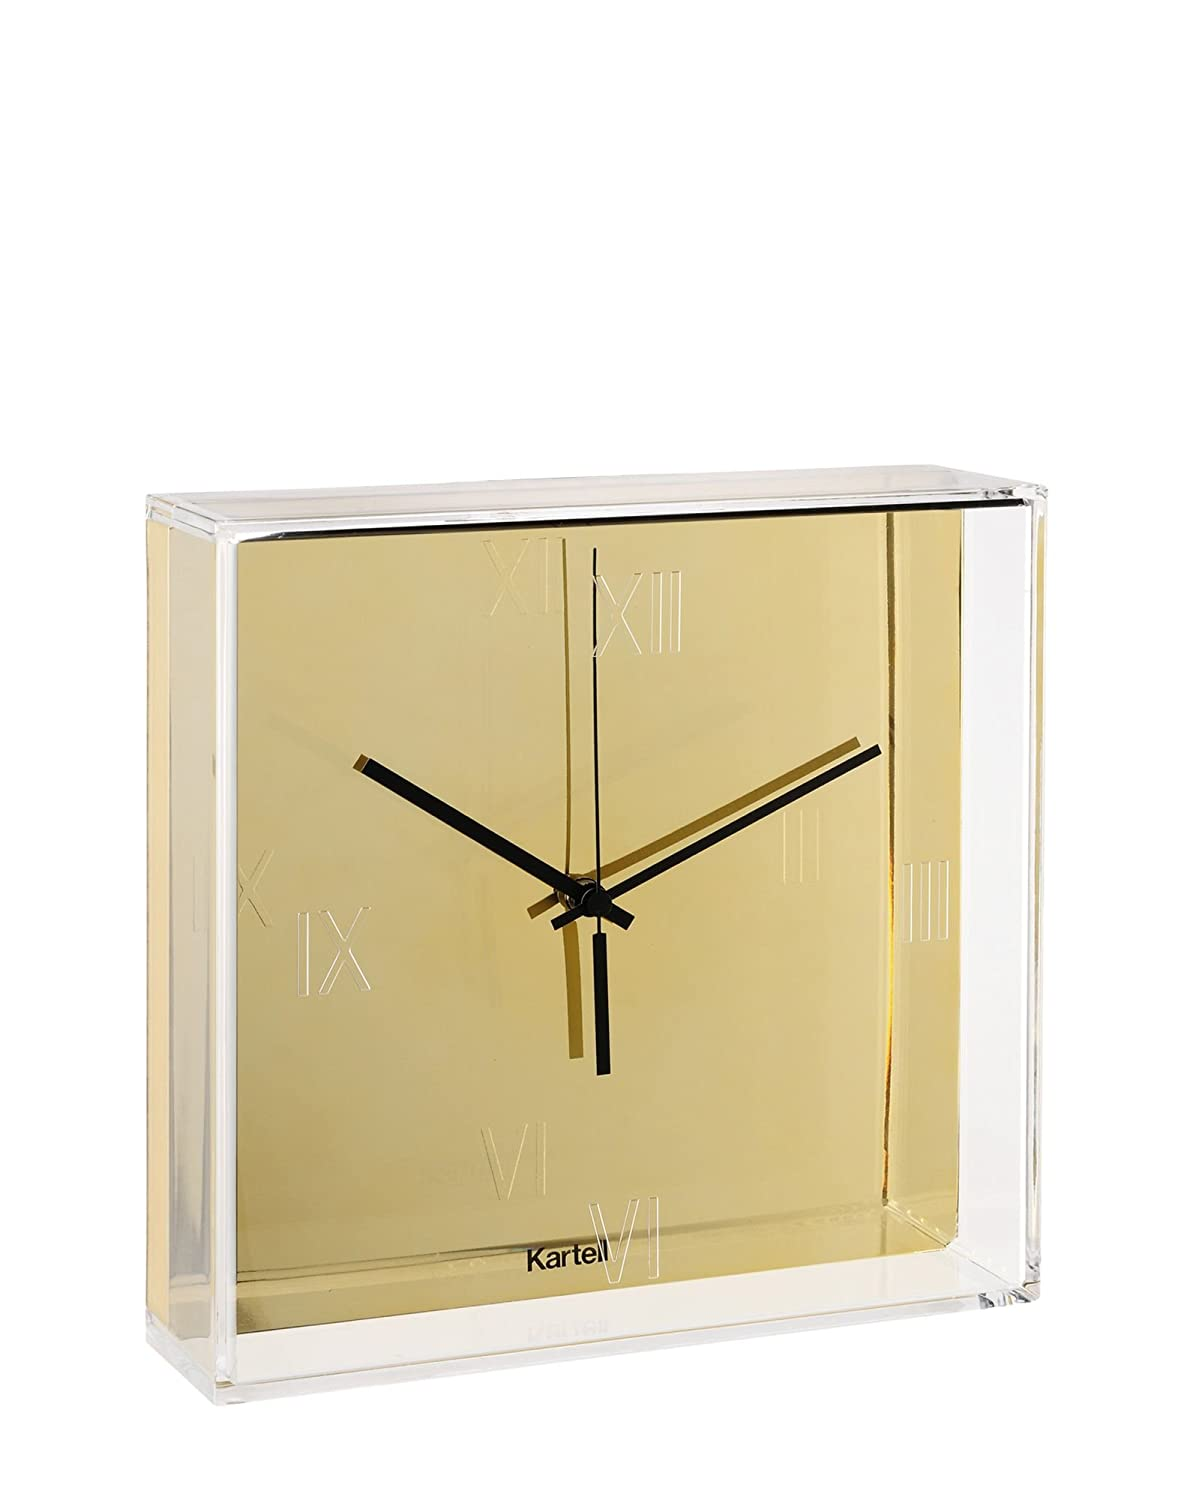 amazoncom kartell tictac clock by philippe starck with eugeni  - amazoncom kartell tictac clock by philippe starck with eugeni quitlletmetallic chrome home  kitchen